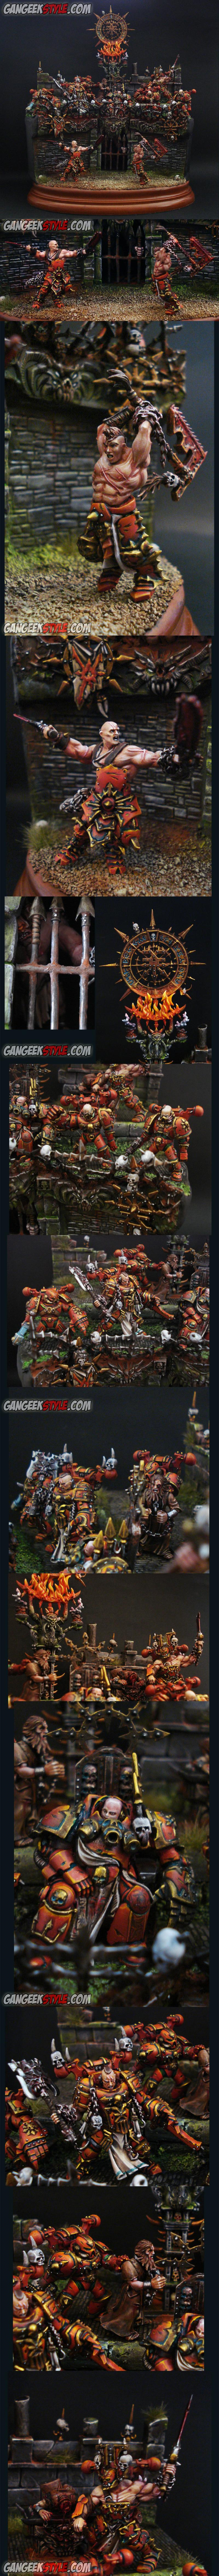 Arena, Blood, Chaos, Chaos Space Marines, Diorama, Khorne, Object Source Lighting, Space Marines